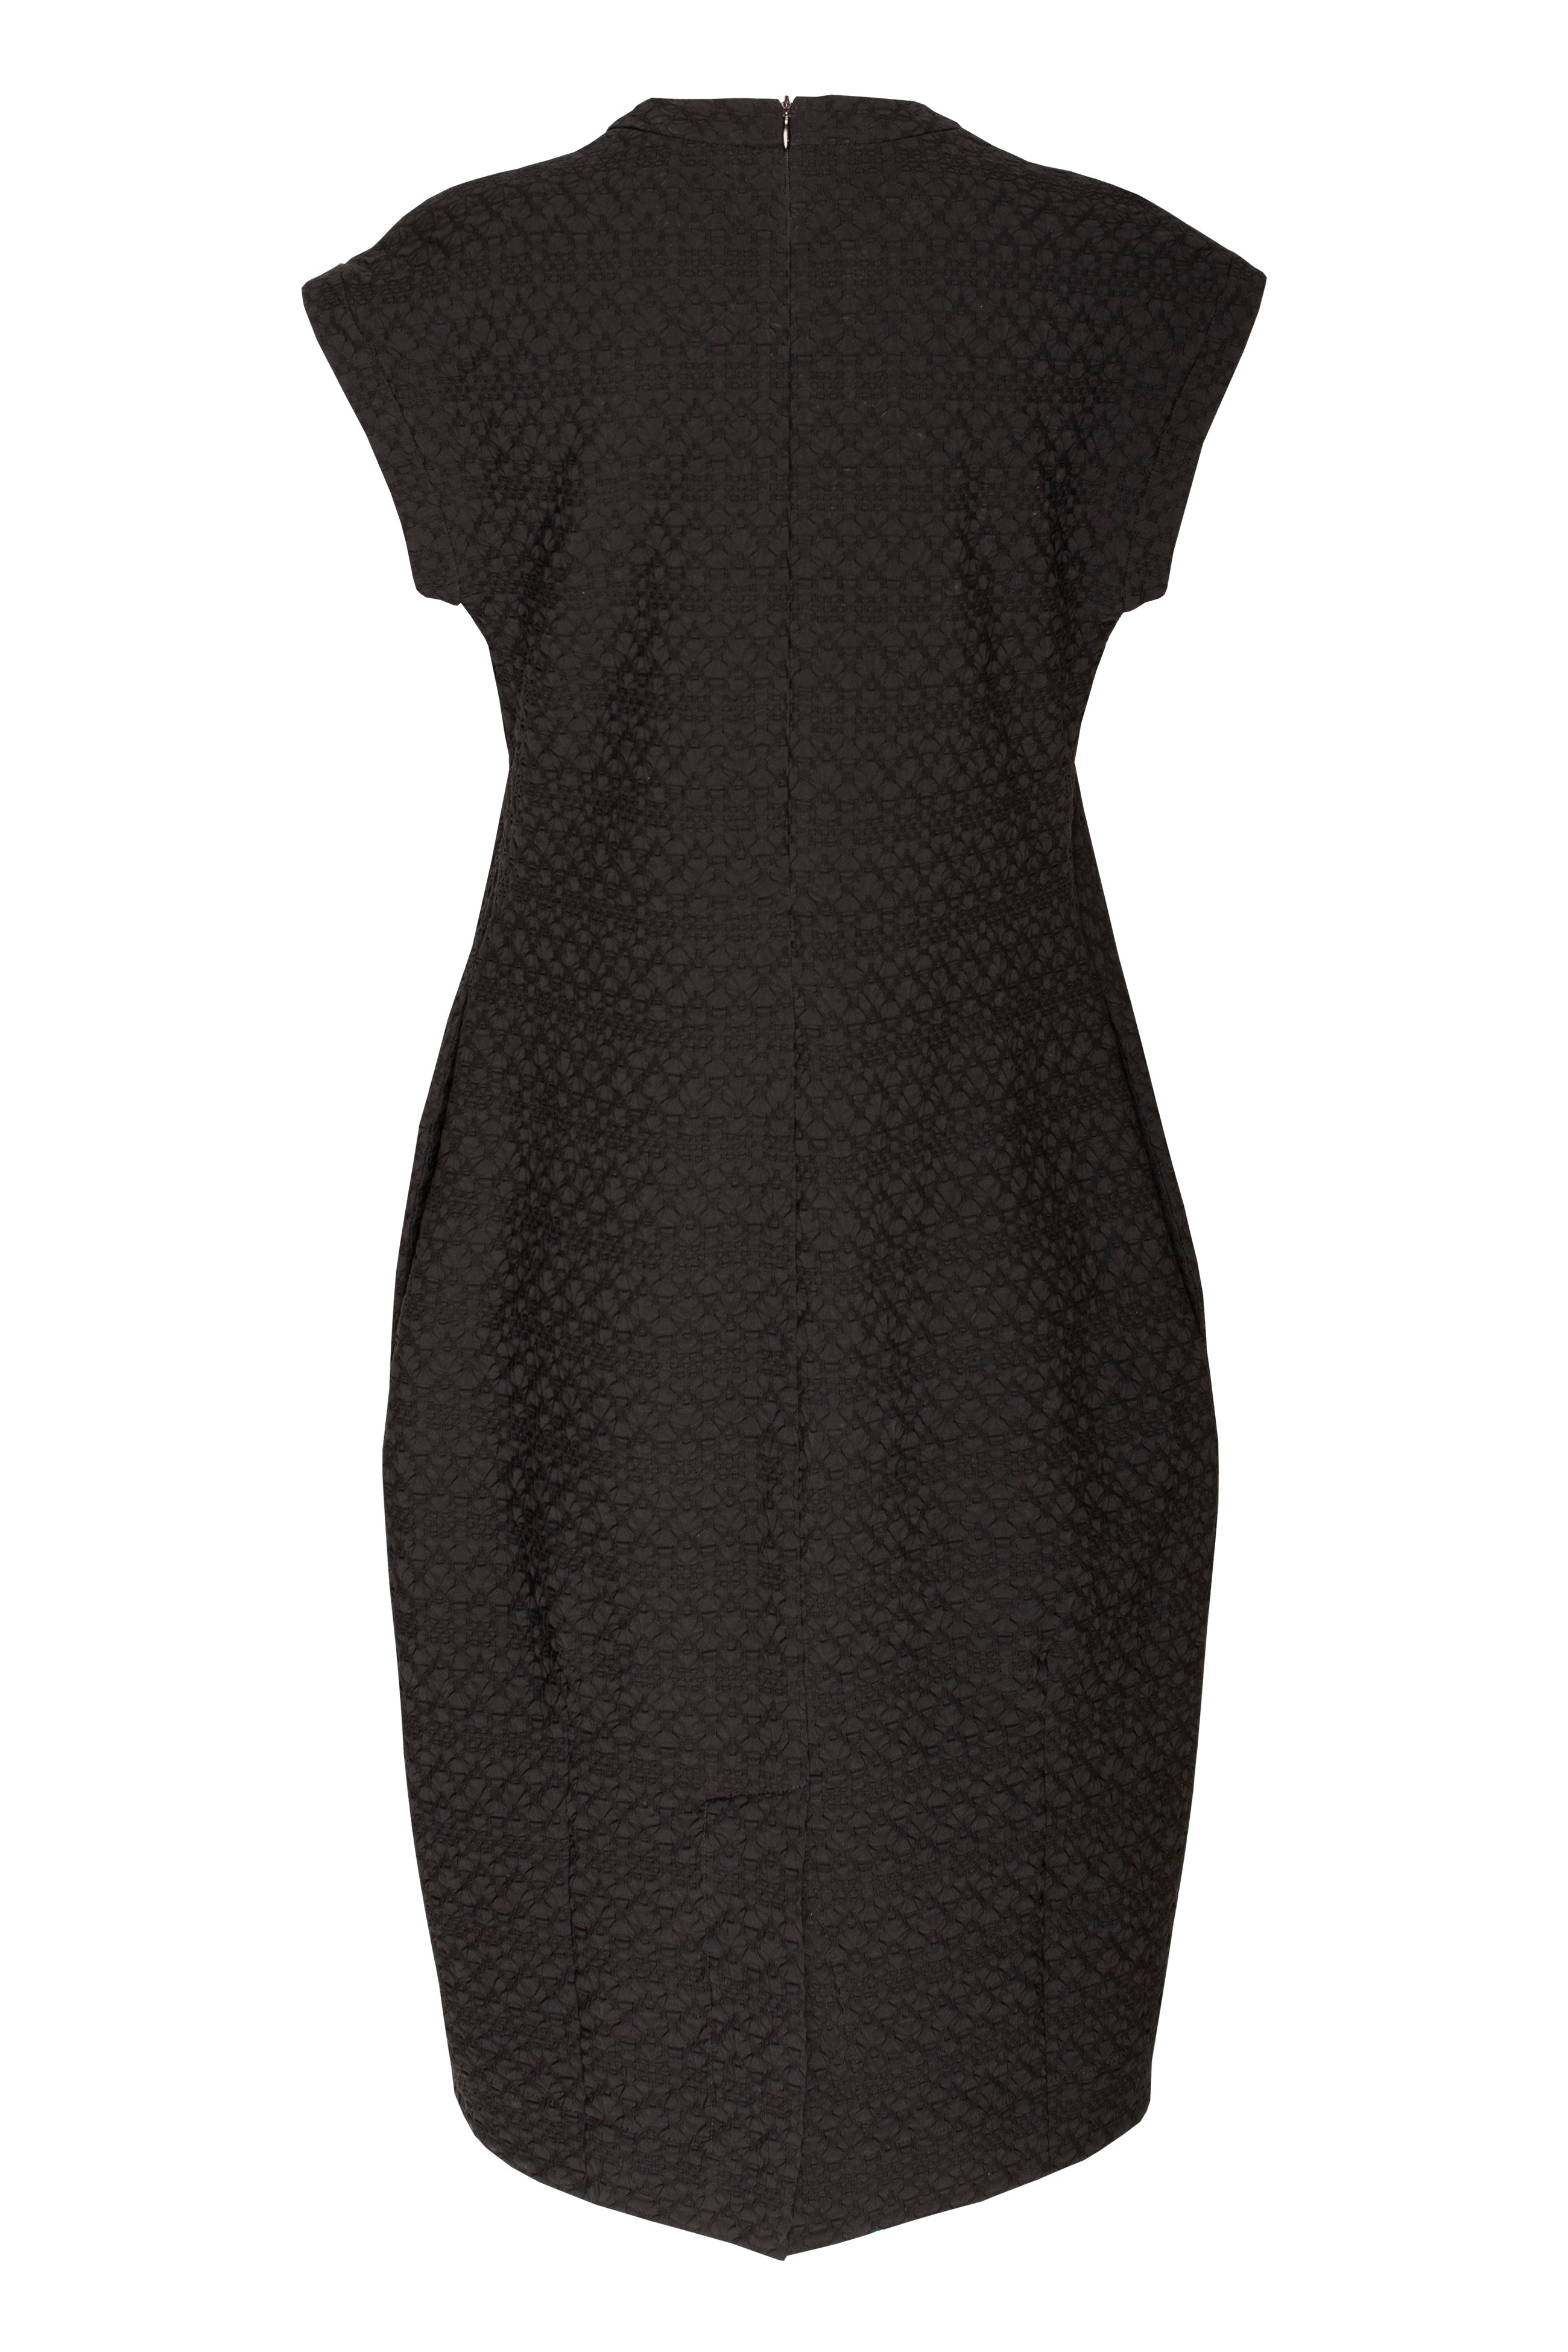 Black Jacquard Cuffed Sleeve Dress 7230